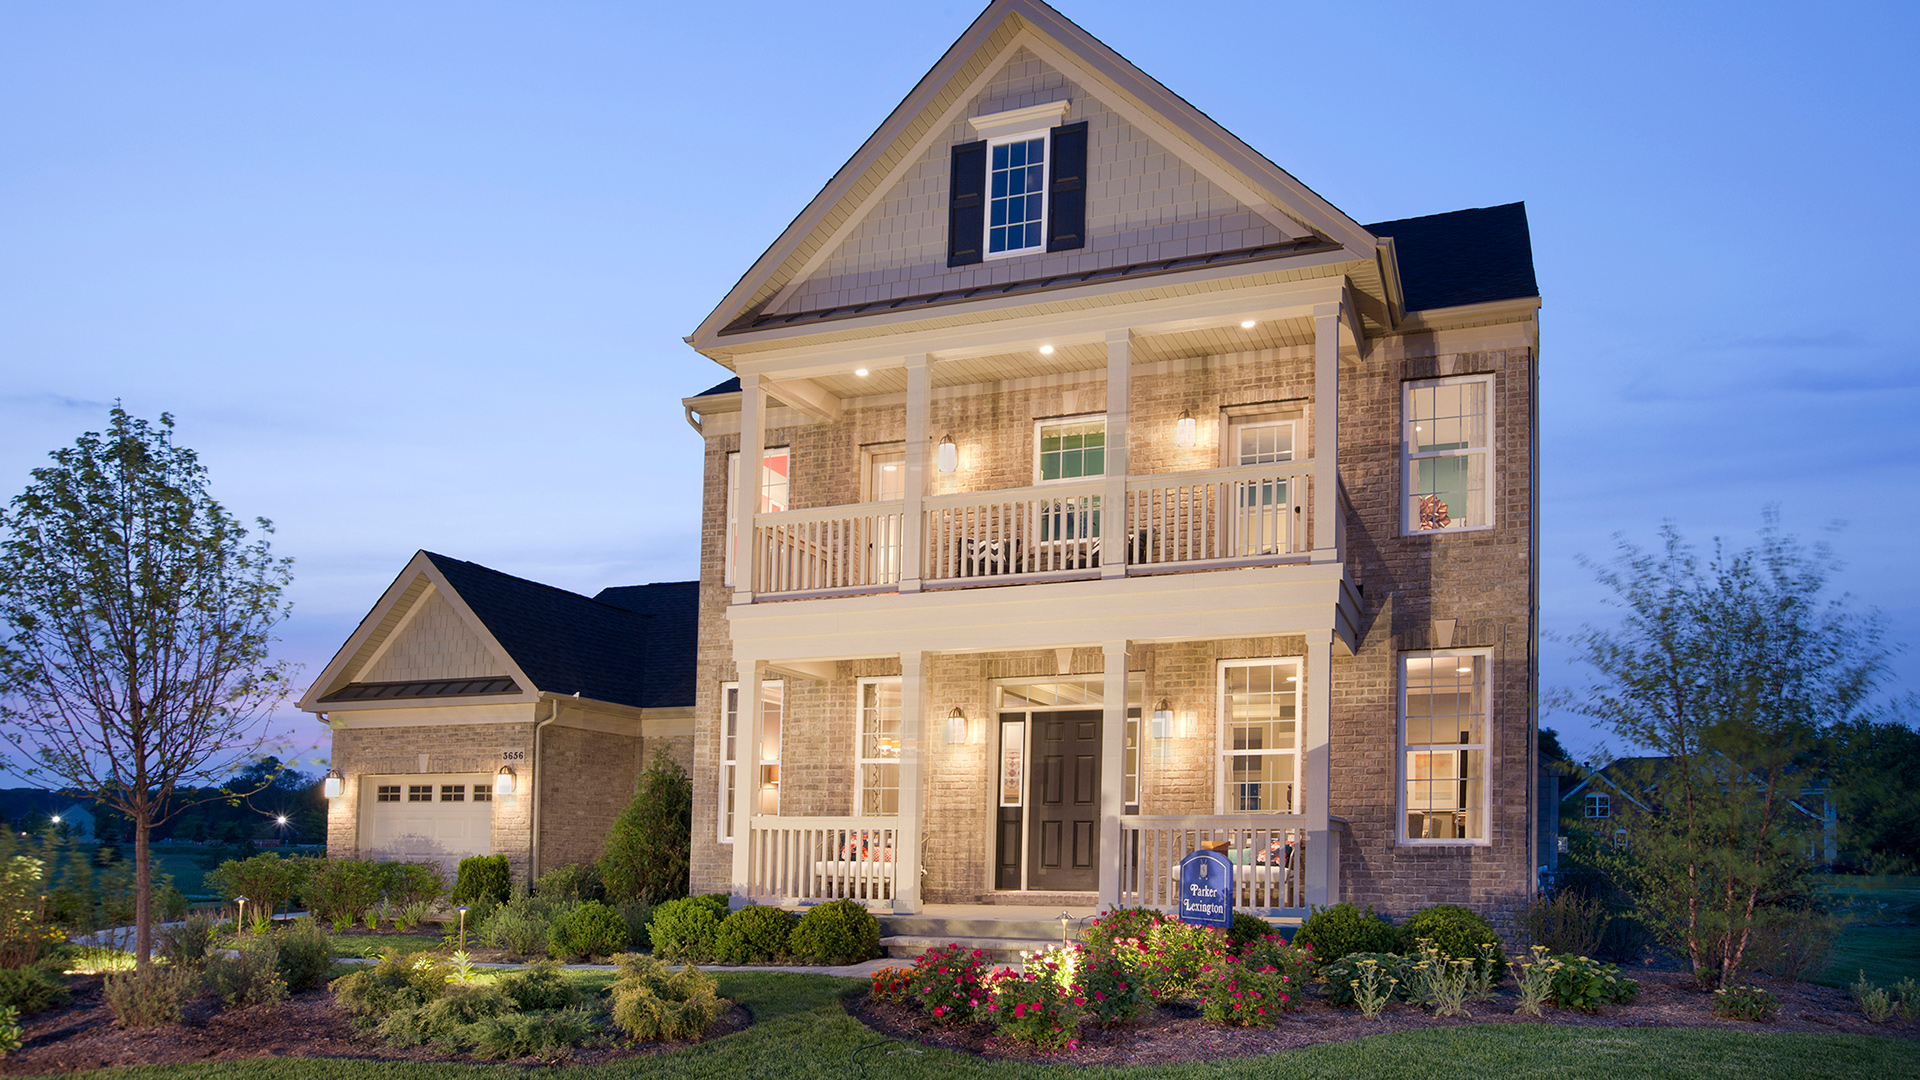 Visit our gorgeous new model home - The Parker!